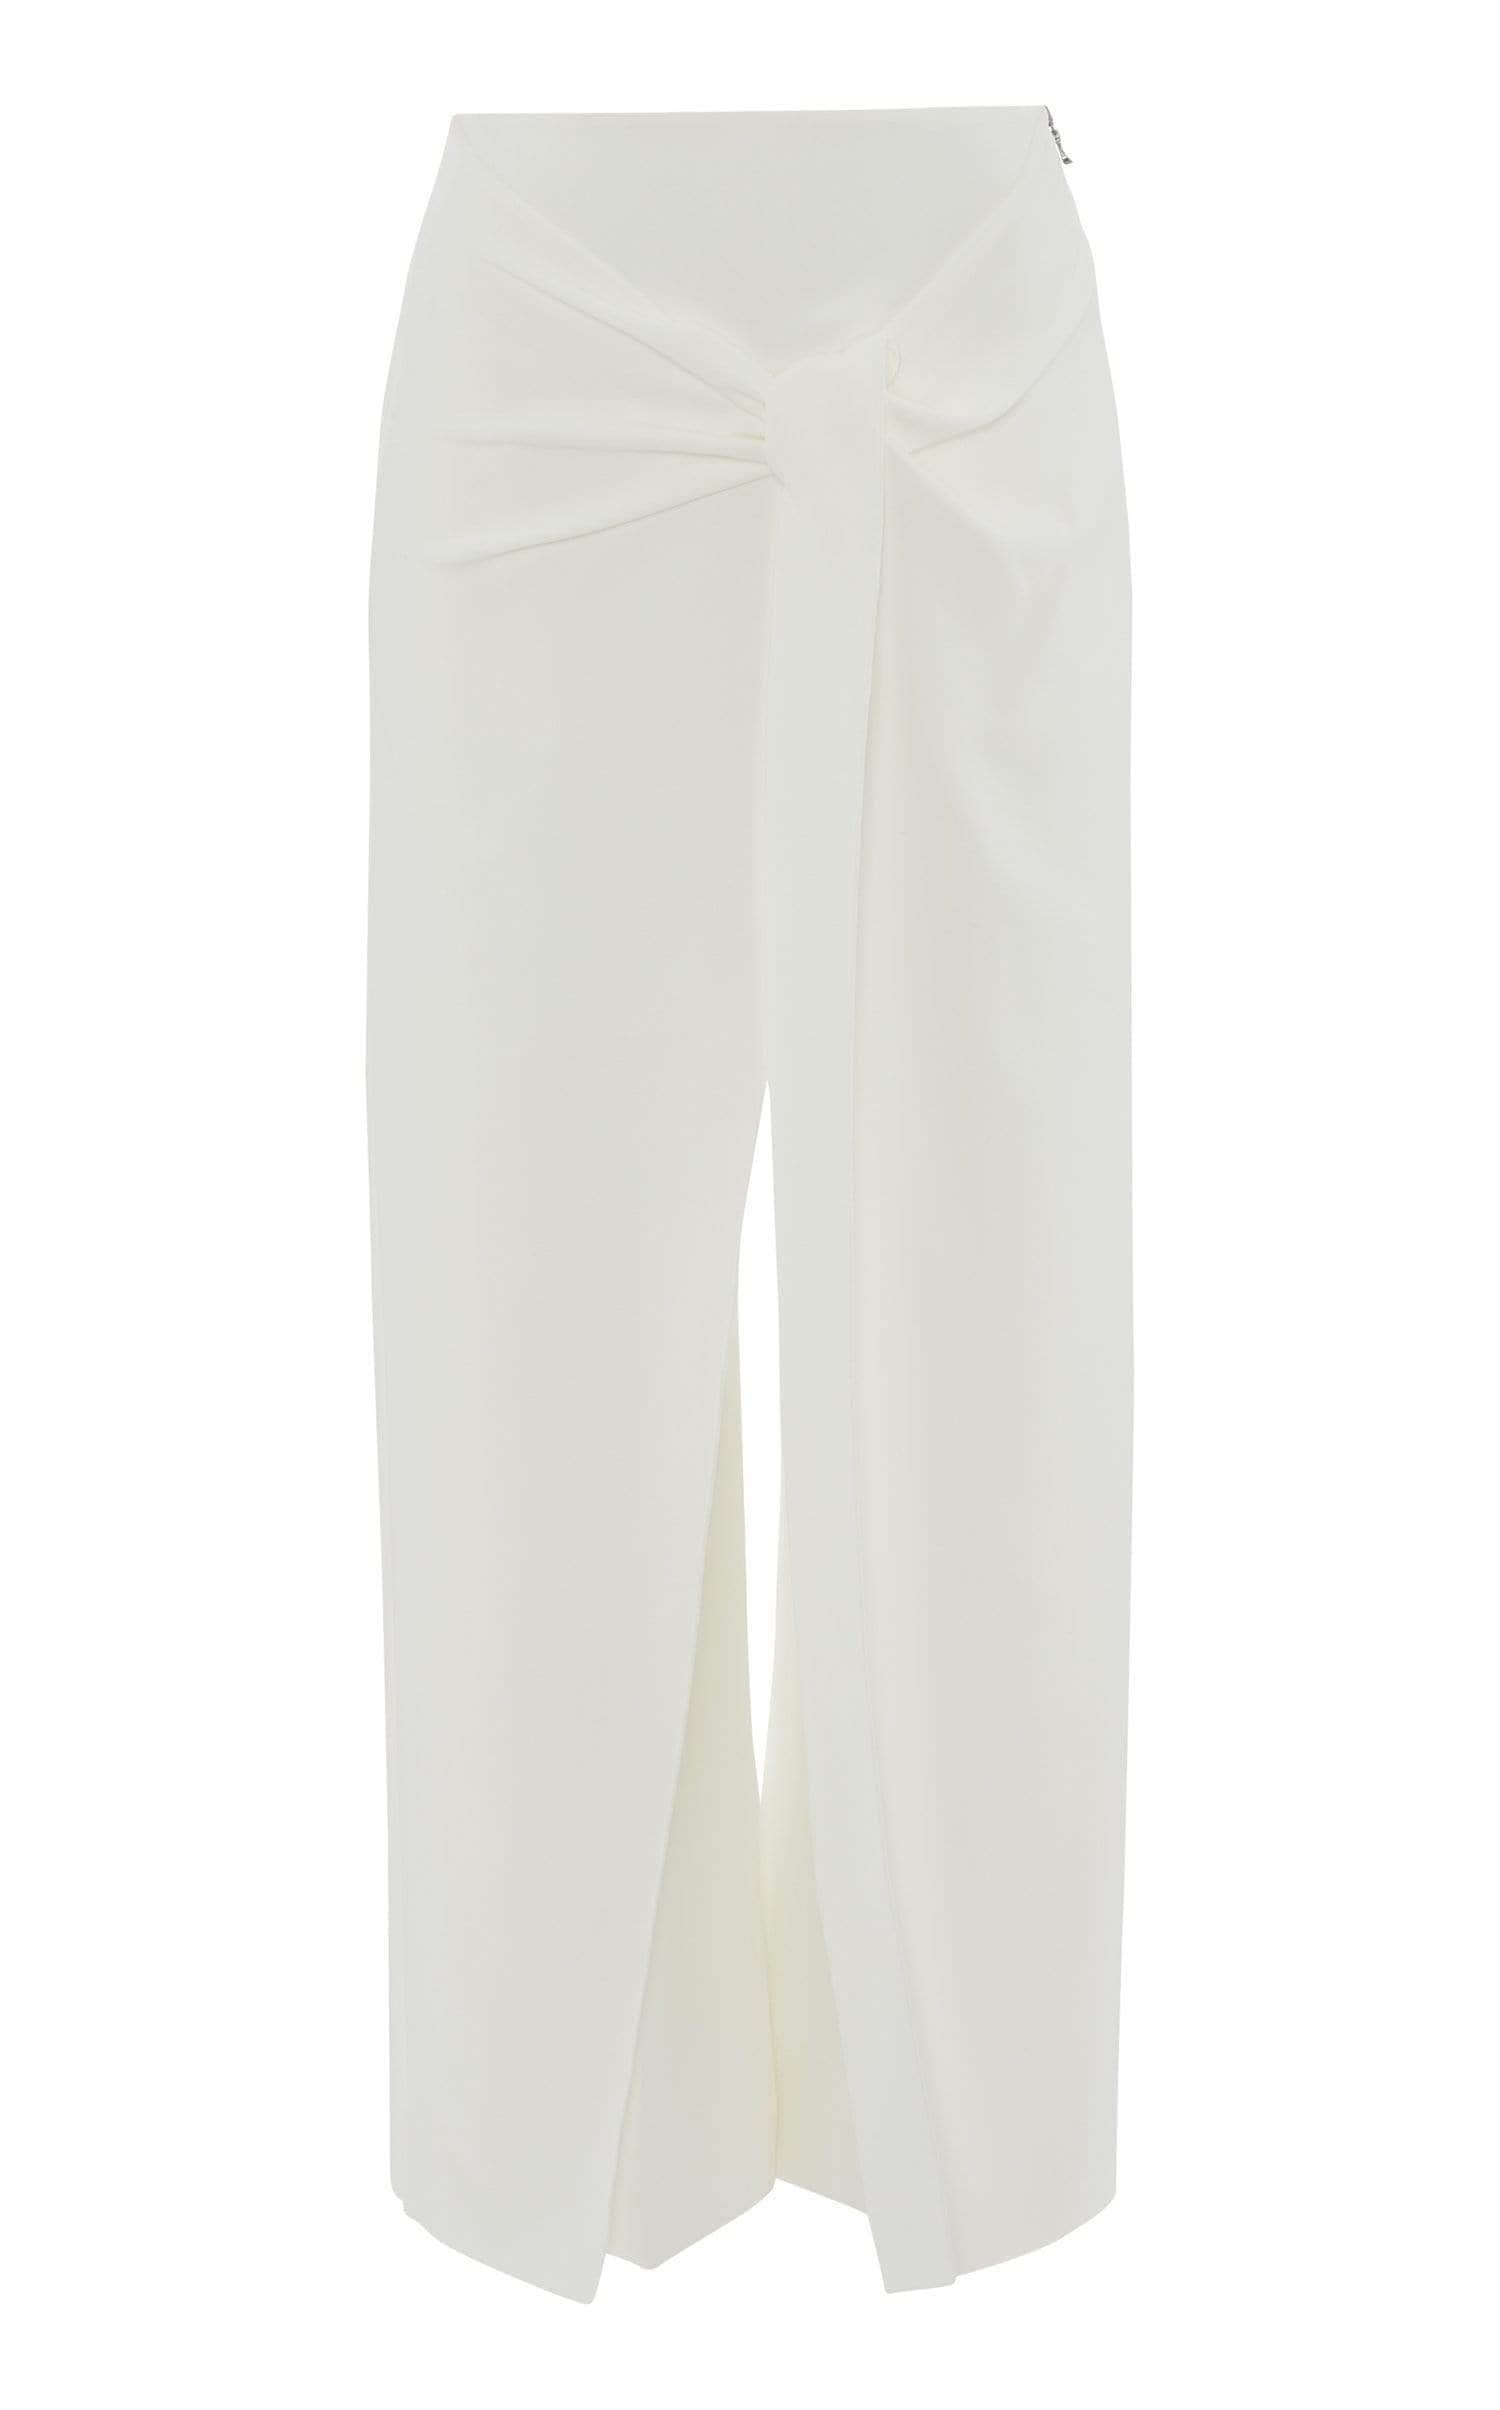 Fenwick Trouser In White from Roland Mouret